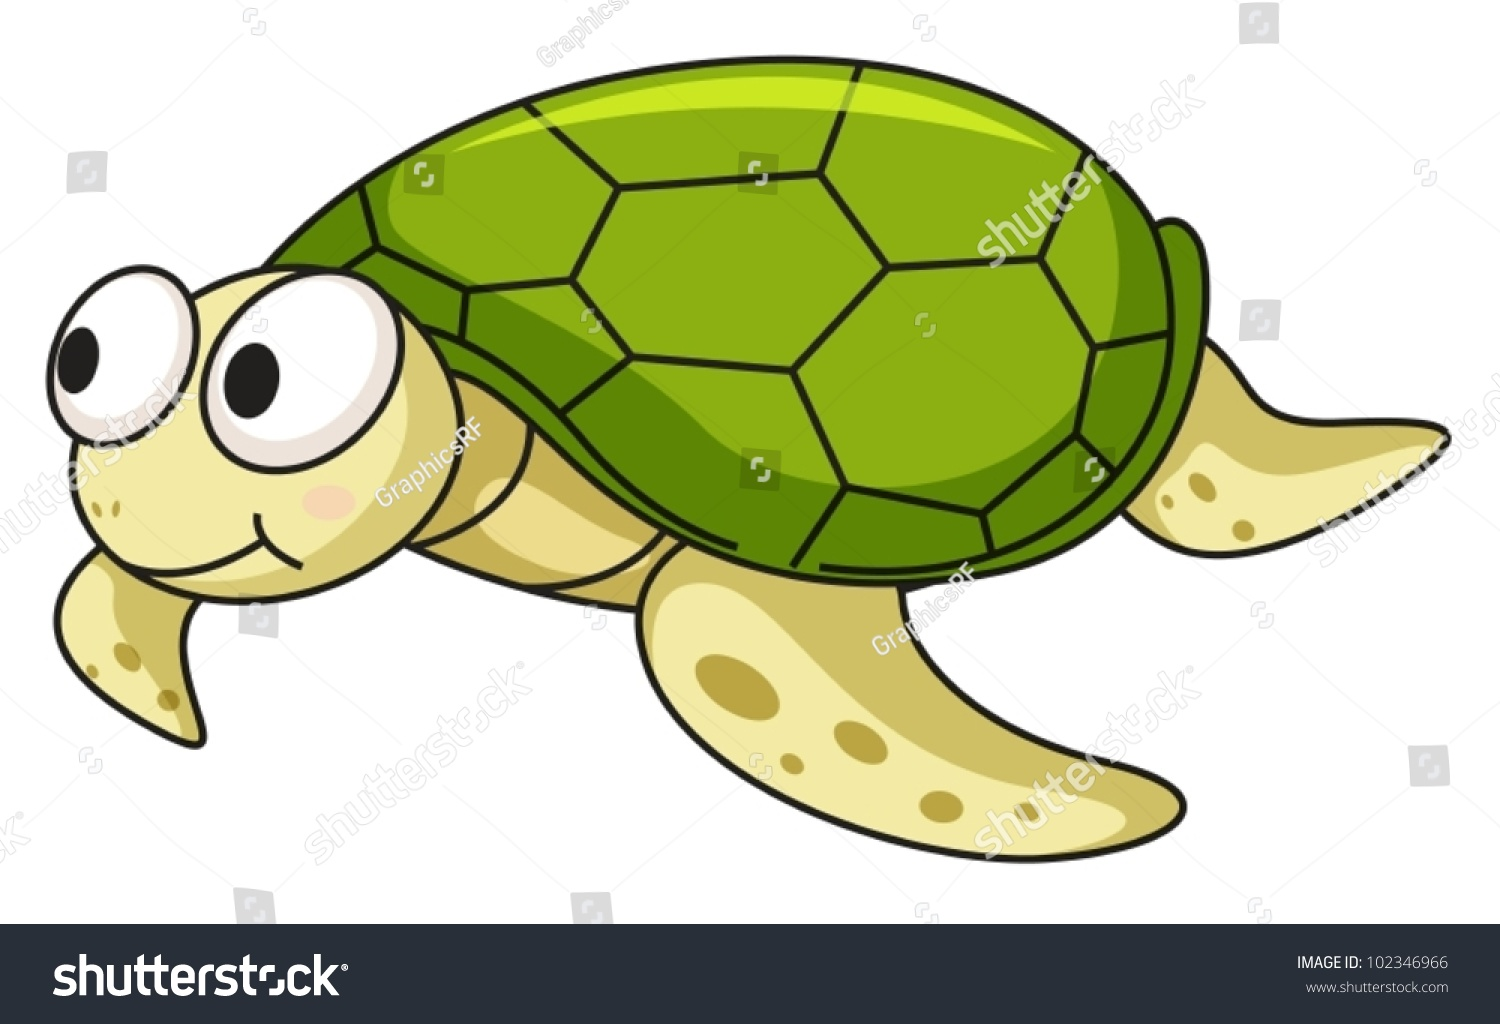 Stock Vector Illustration Of An Isolated Turtle